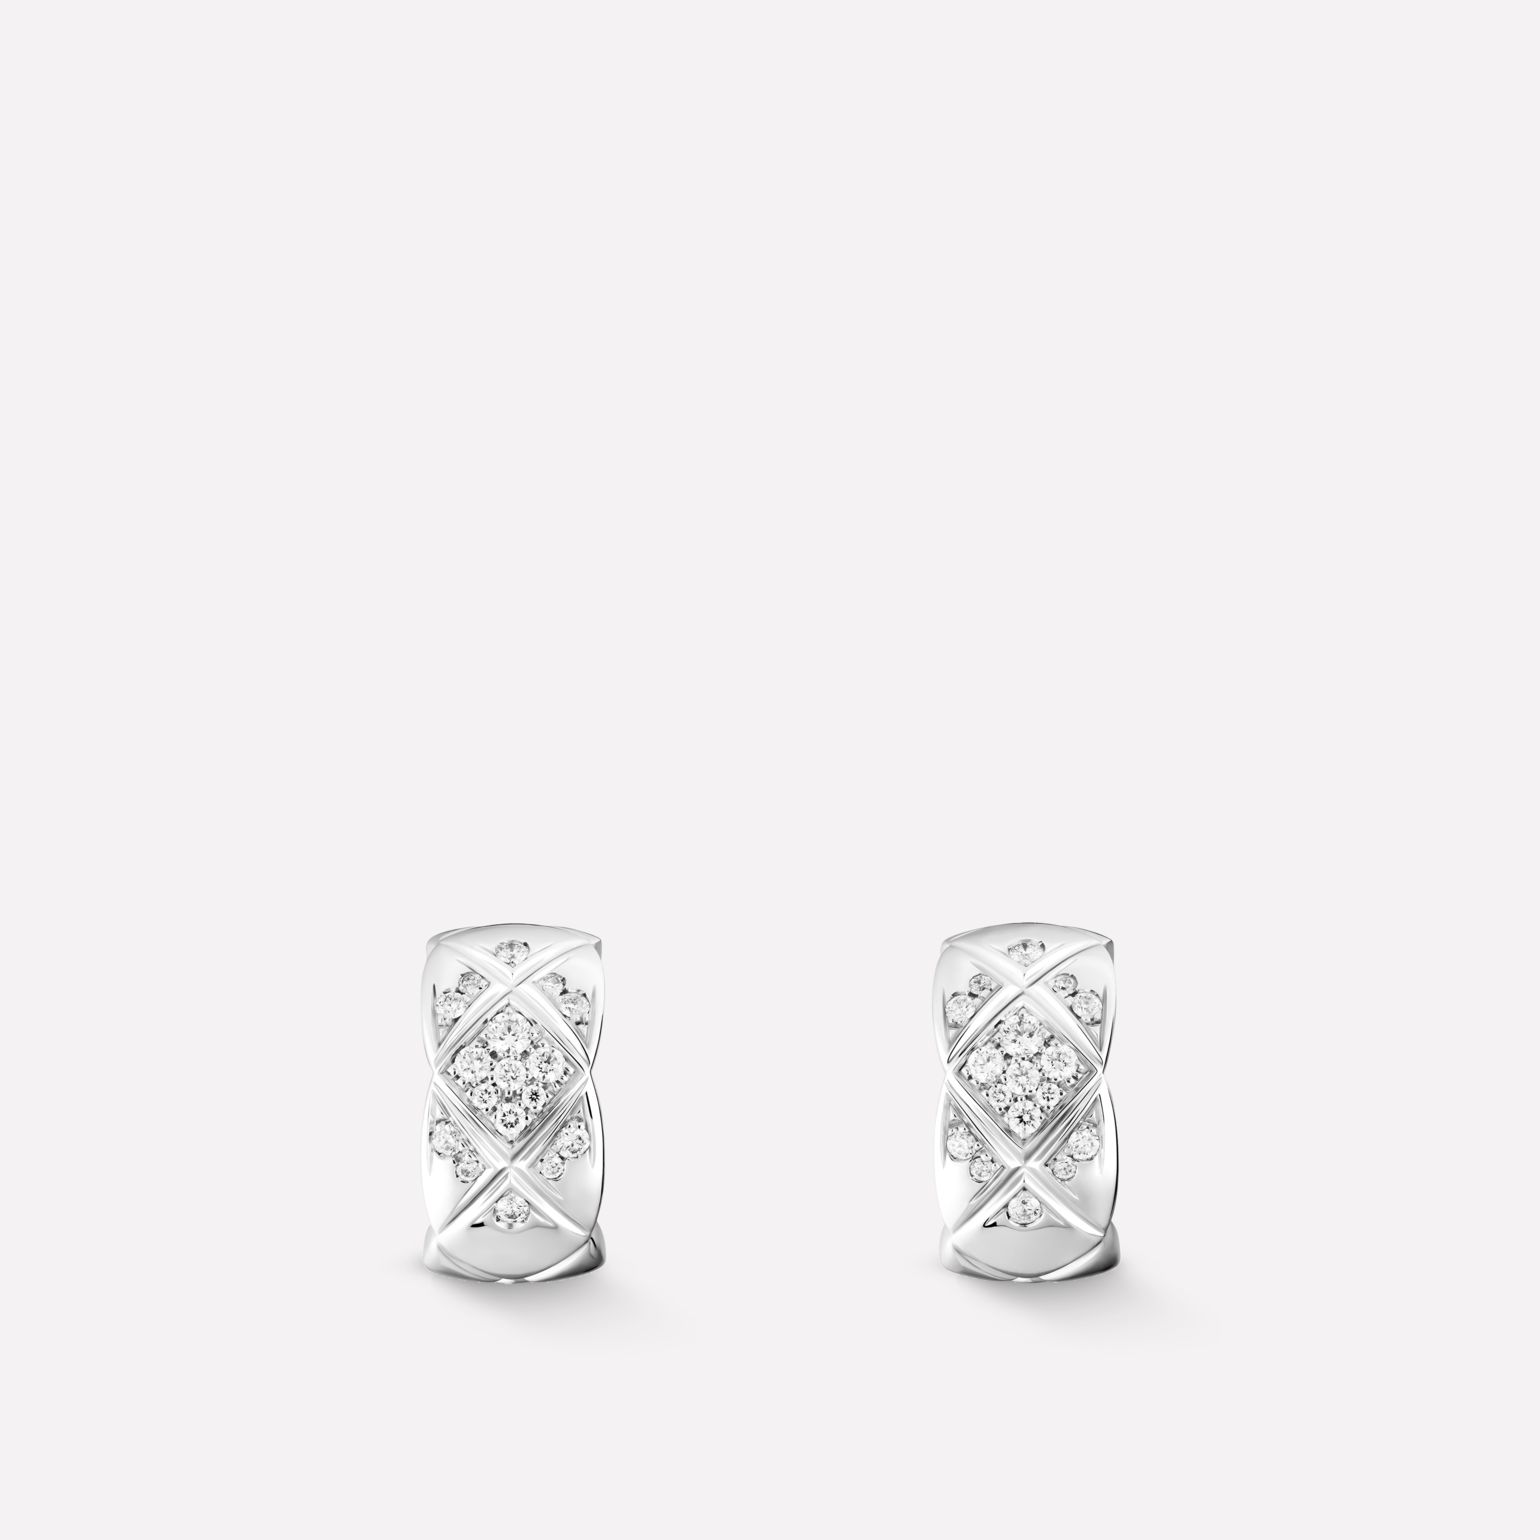 Boucles d'oreilles Coco Crush Motif matelassé, en or blanc 18 carats et diamants